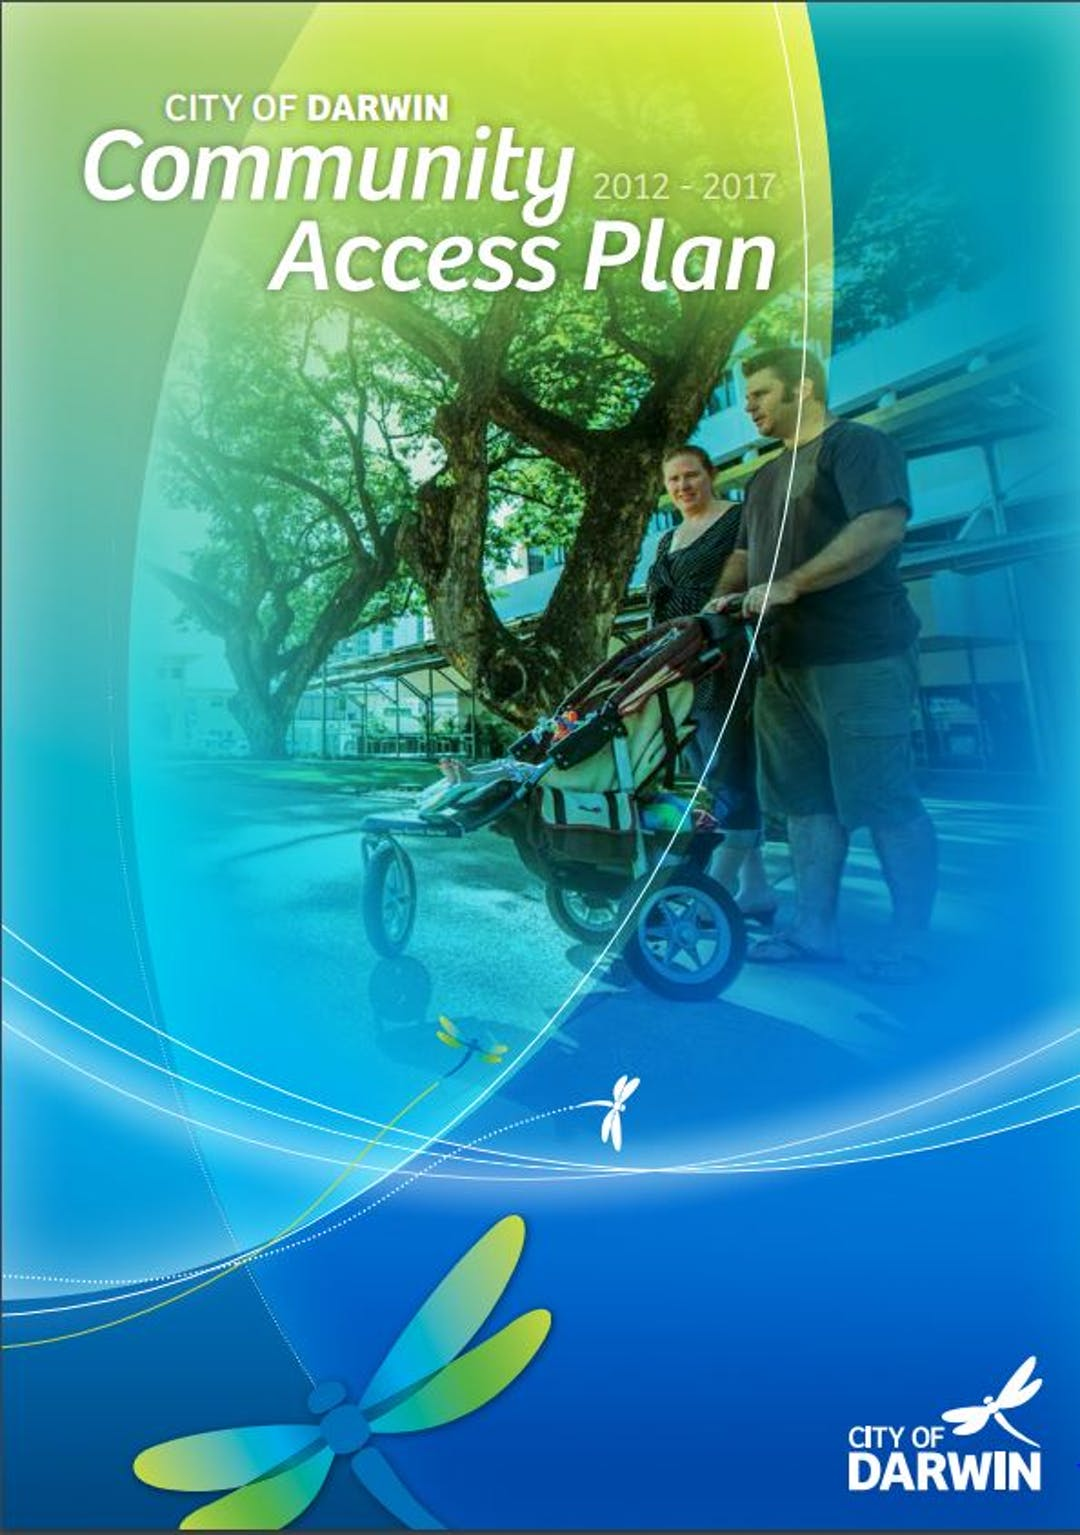 "The image is the cover page of the existing Access Plan. The text reads ""City of Darwin Community Access Plan, 2012 -2017"" The City of Darwin dragonfly logo is placed over a photo of man and a woman pushing a pram in Raintree Park Darwin."